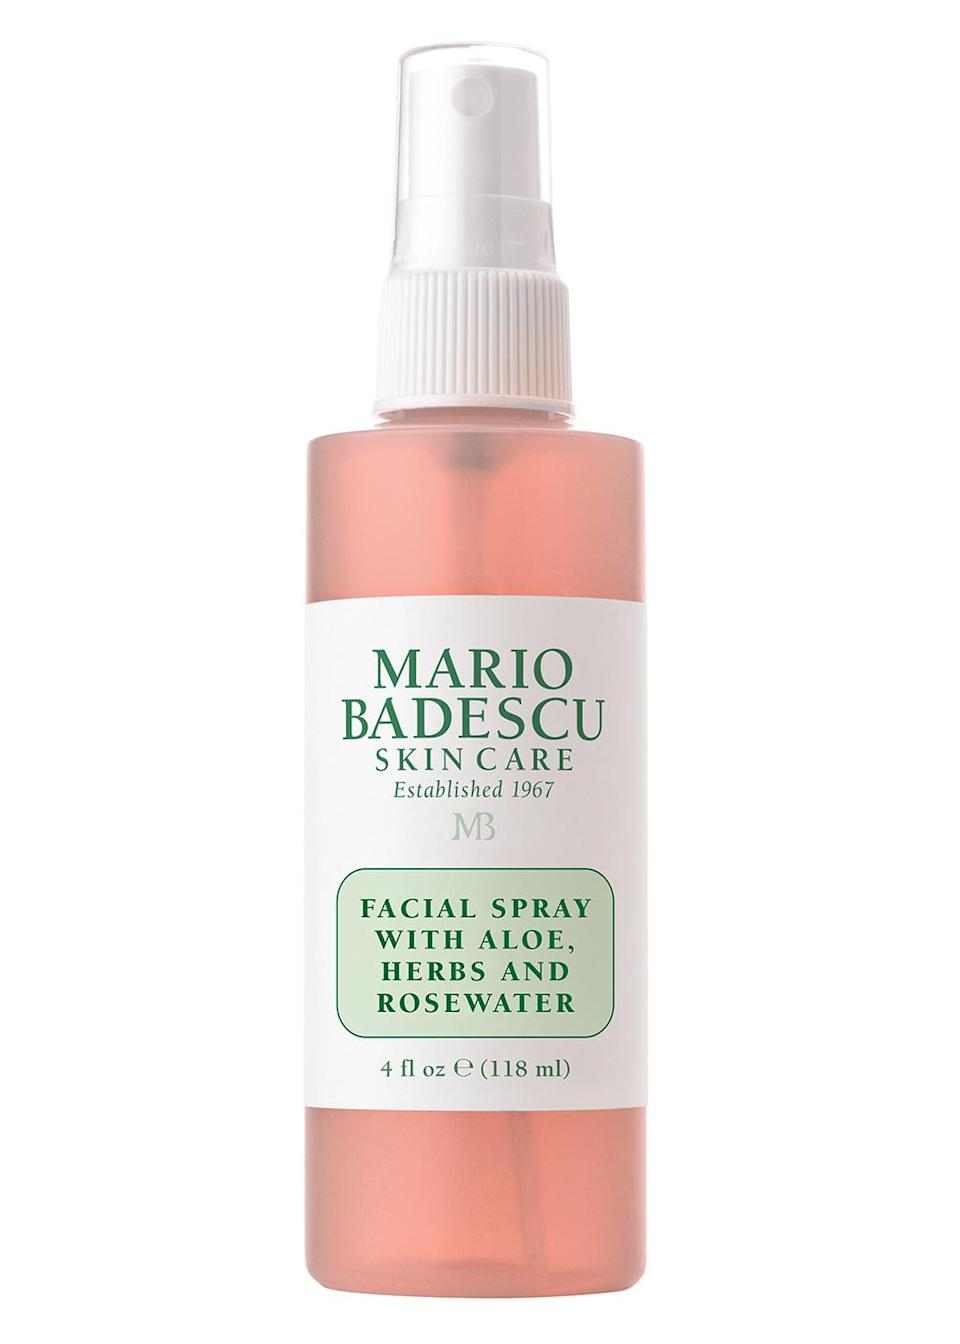 """<p>""""You can throw it in your purse and moisturize while you're on the run. Your skin will be like, 'Ohh, thank you, I needed that.' I'm spraying it right now! I love it.""""</p> <p><strong>Buy It!</strong> Mario Badescu Facial Spray with Aloe, Herbs and Rosewater, $7; <a href=""""https://ulta.ztk5.net/c/249354/164999/3037?subId1=PEOVivicaAFoxsStyleandBeautyEssentialsjfields1271StyGal12812182202107I&u=https%3A%2F%2Fwww.ulta.com%2Fp%2Ffacial-spray-with-aloe-herbs-rosewater-xlsImpprod6200727"""" rel=""""sponsored noopener"""" target=""""_blank"""" data-ylk=""""slk:ulta.com"""" class=""""link rapid-noclick-resp"""">ulta.com</a></p>"""